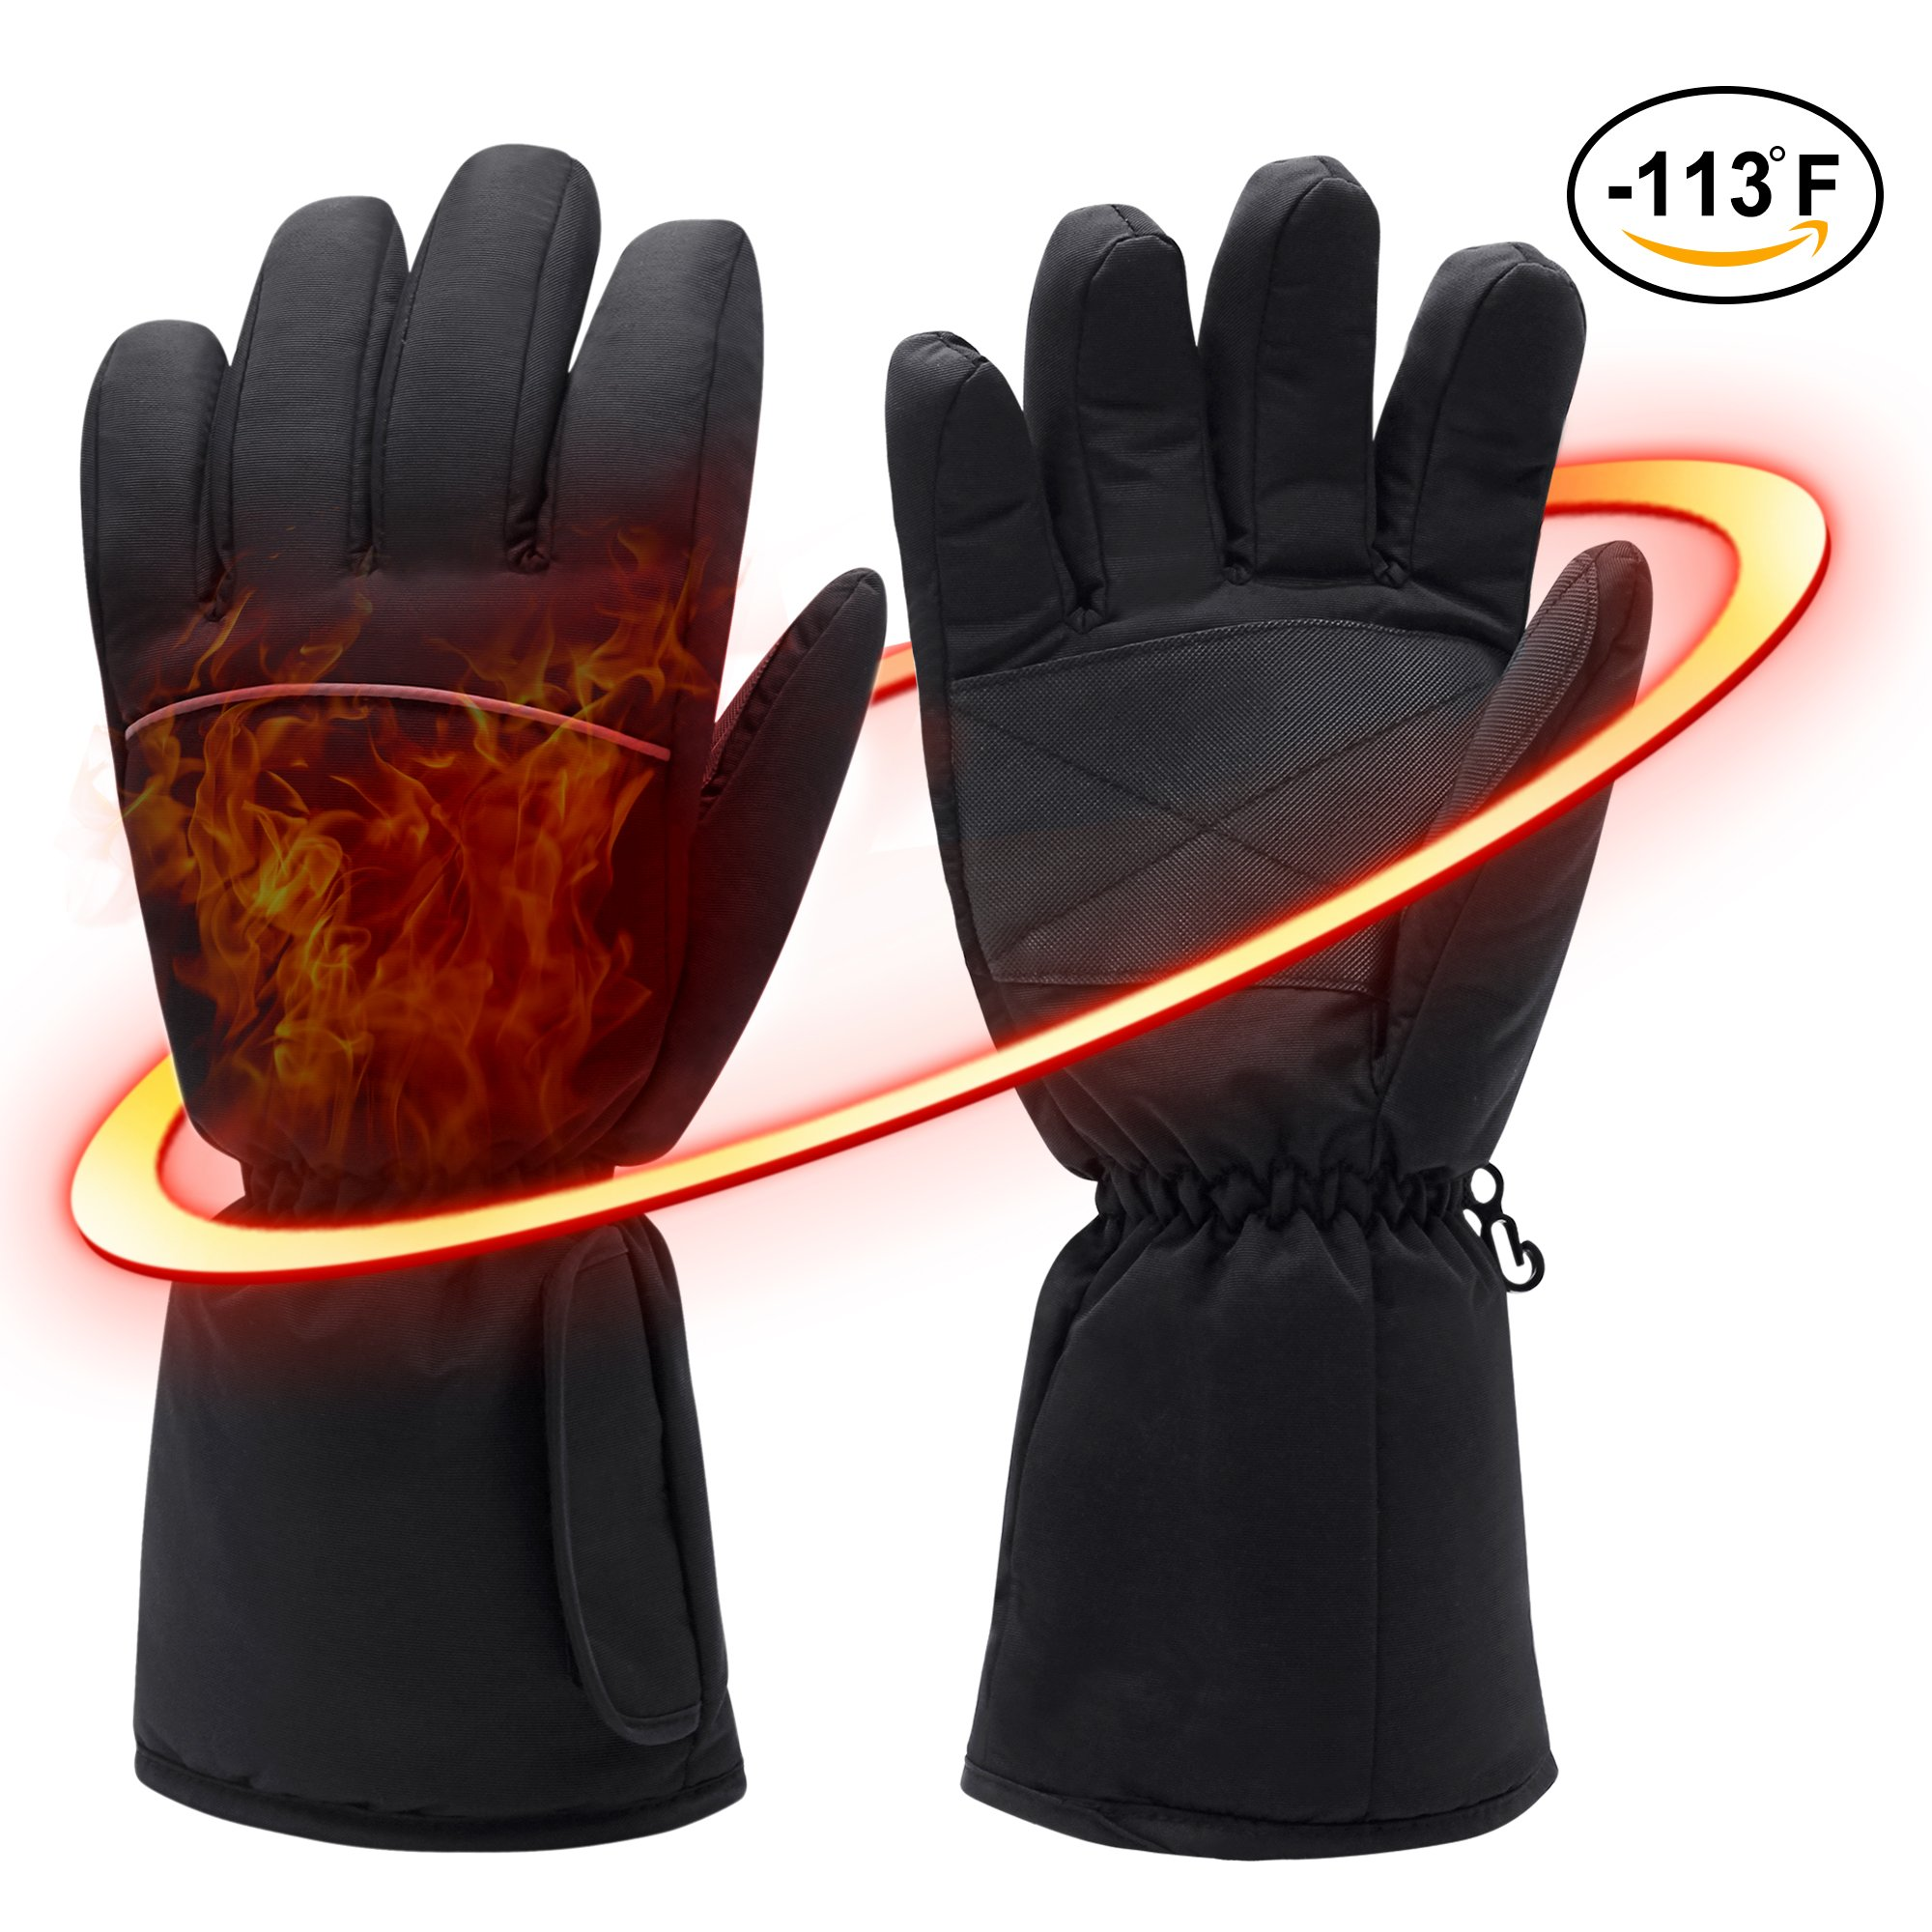 Rechargeable Electric Heated Gloves for Cold Winter - 6 AA Battery Operated Winter Heated Gloves for Men Woman Outdoor Indoor Activities Snowboarding, Shredding, Shoveling, Snowballs, Riding, Climbing